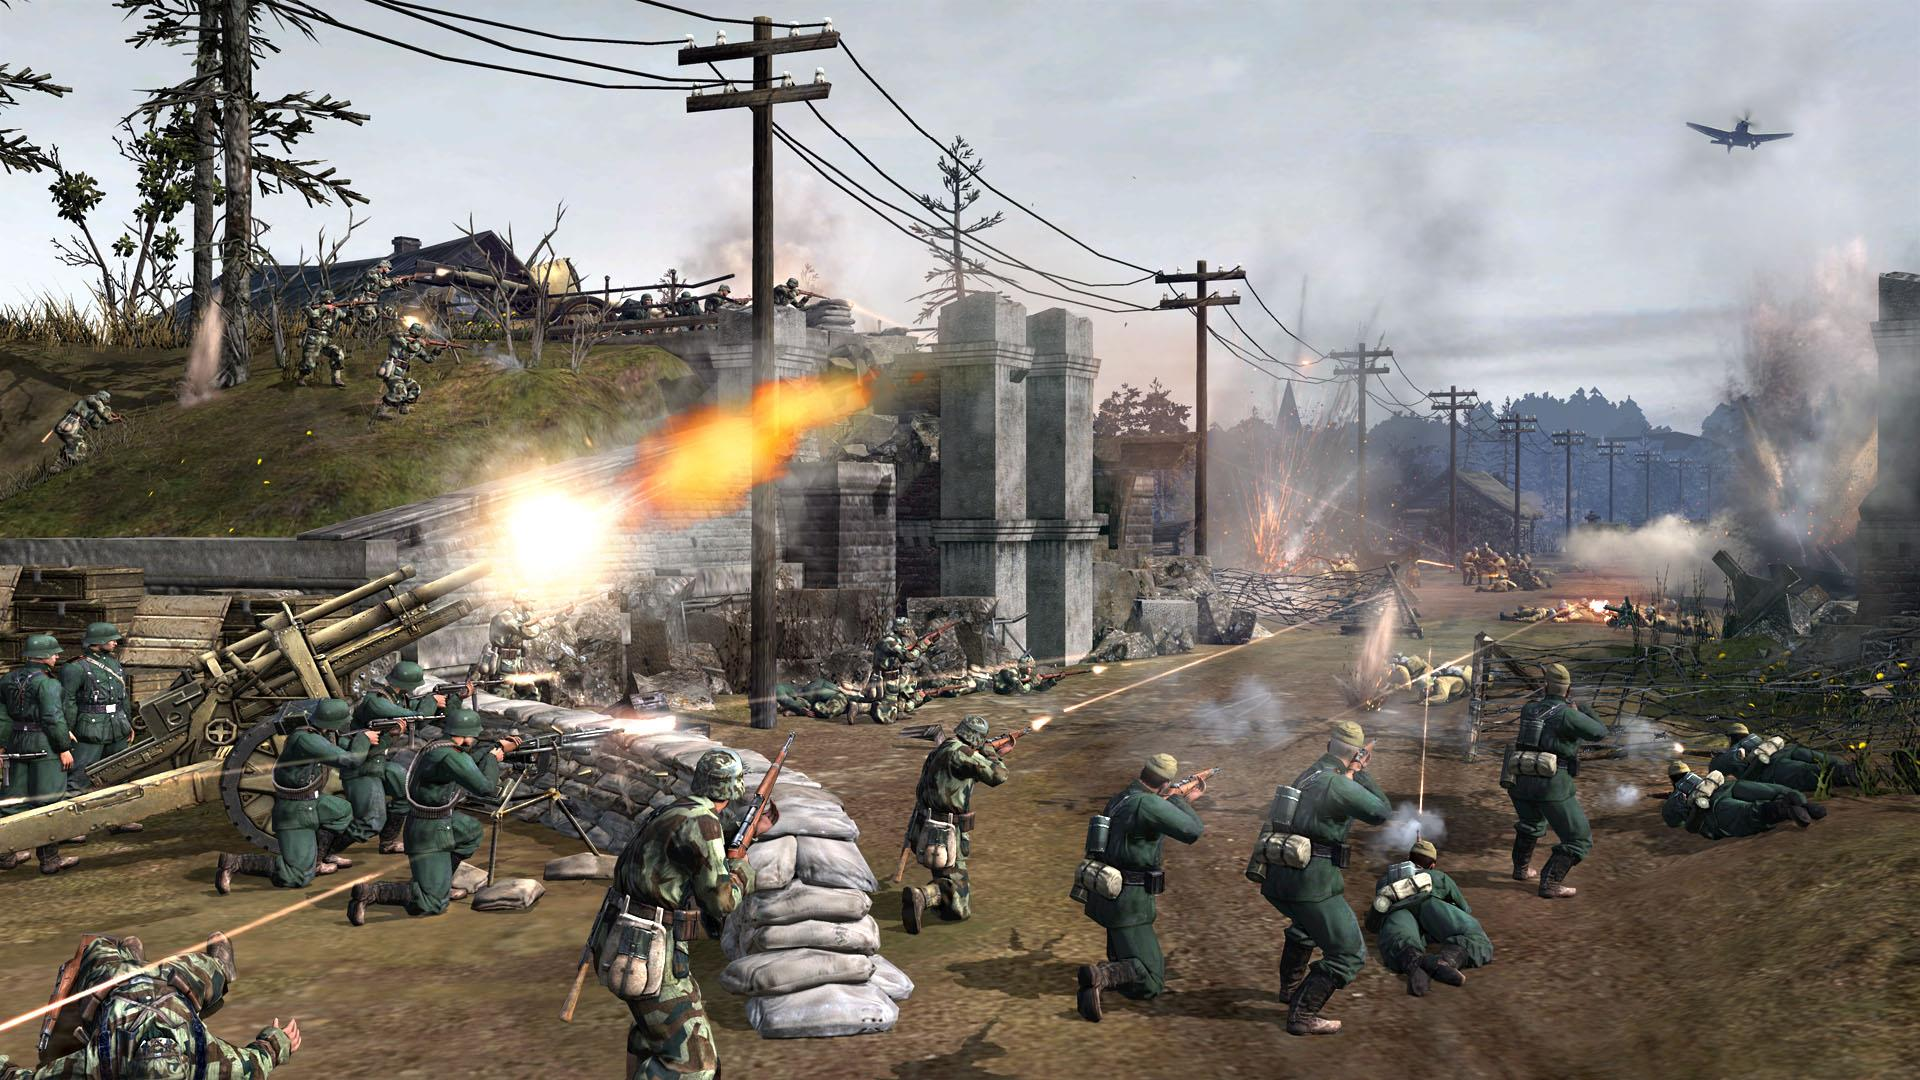 coh2-screenshot-12-2.jpg